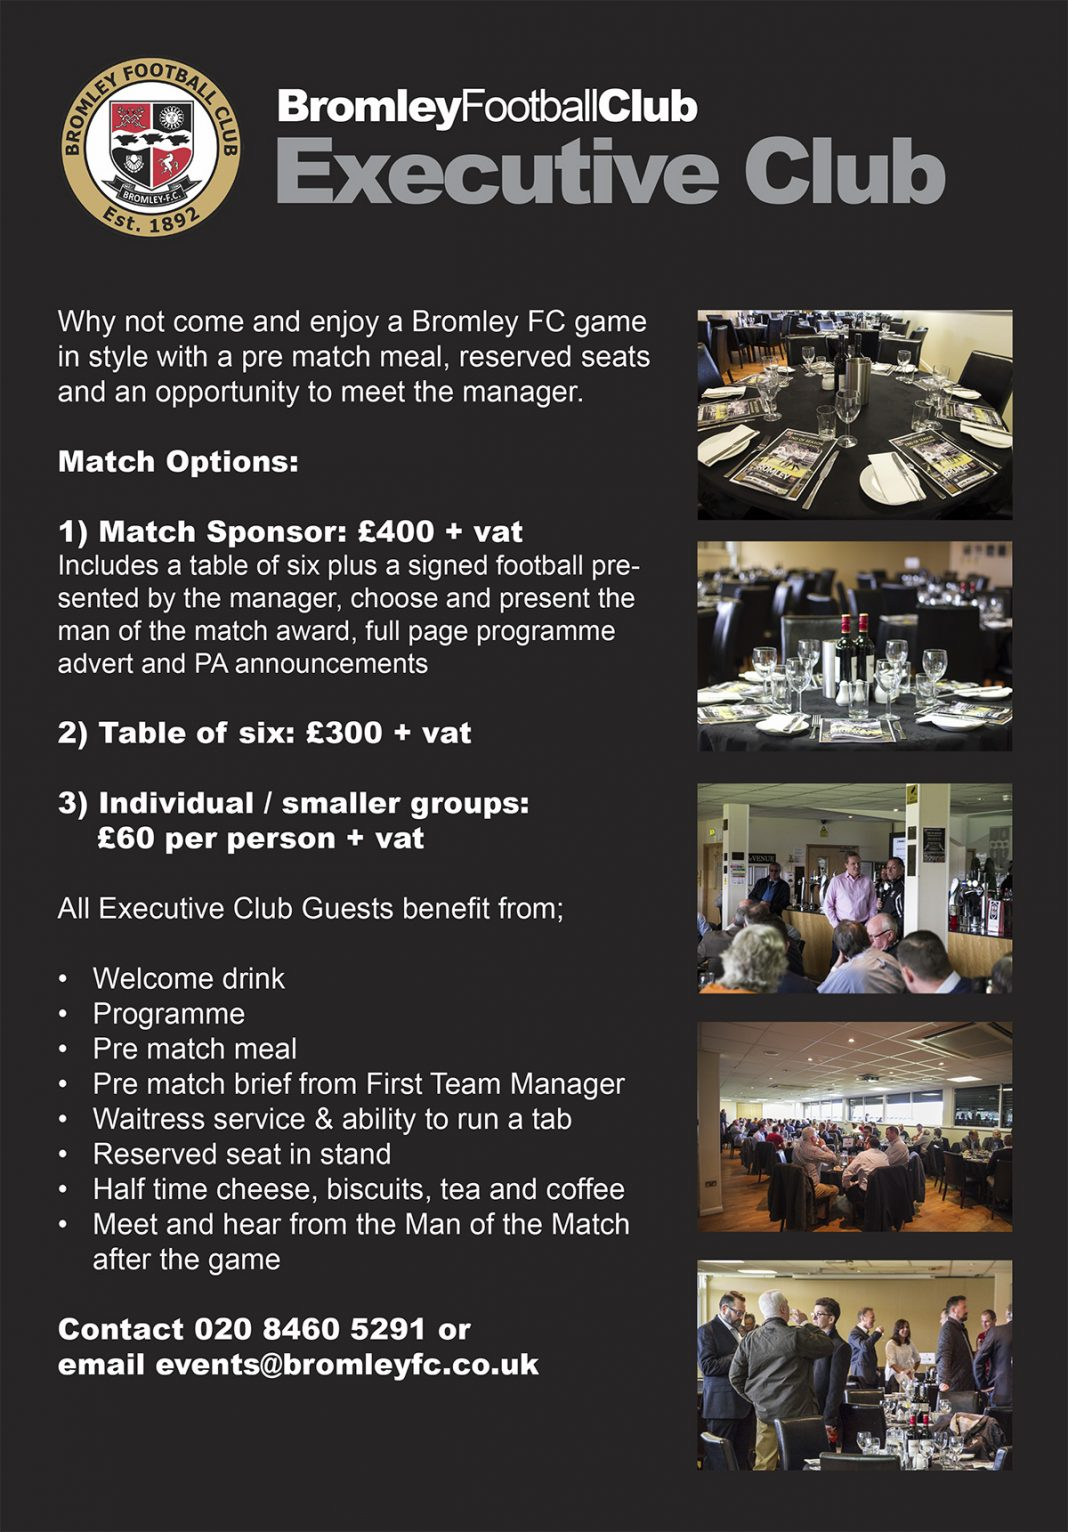 Executive Club - Match Day Hospitality